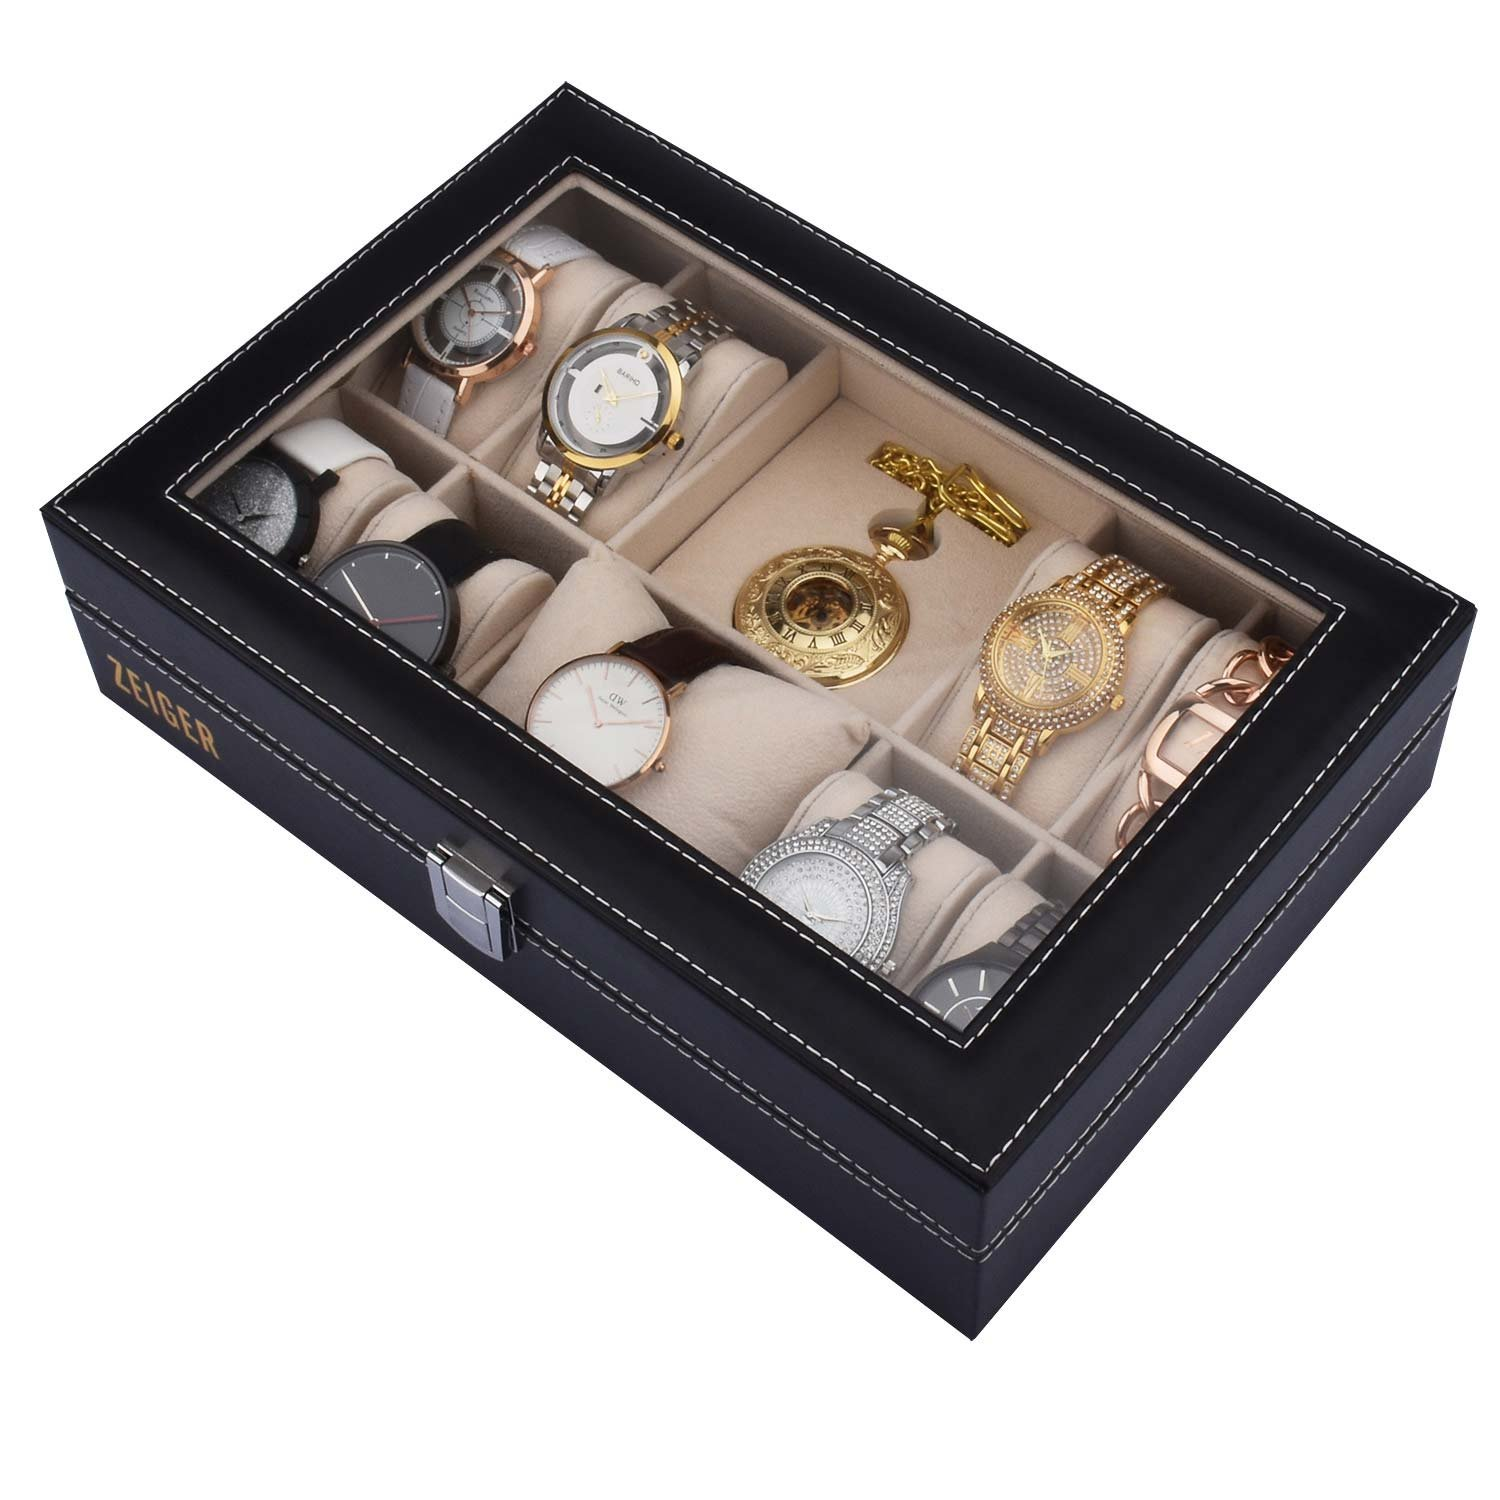 ZEIGER Mens Women Jewelry Watch Storage Display Box Upgrade Large Holder Decorative Faux Leather Watch Case and Glass Top 10 Slot Organizer S001 Black